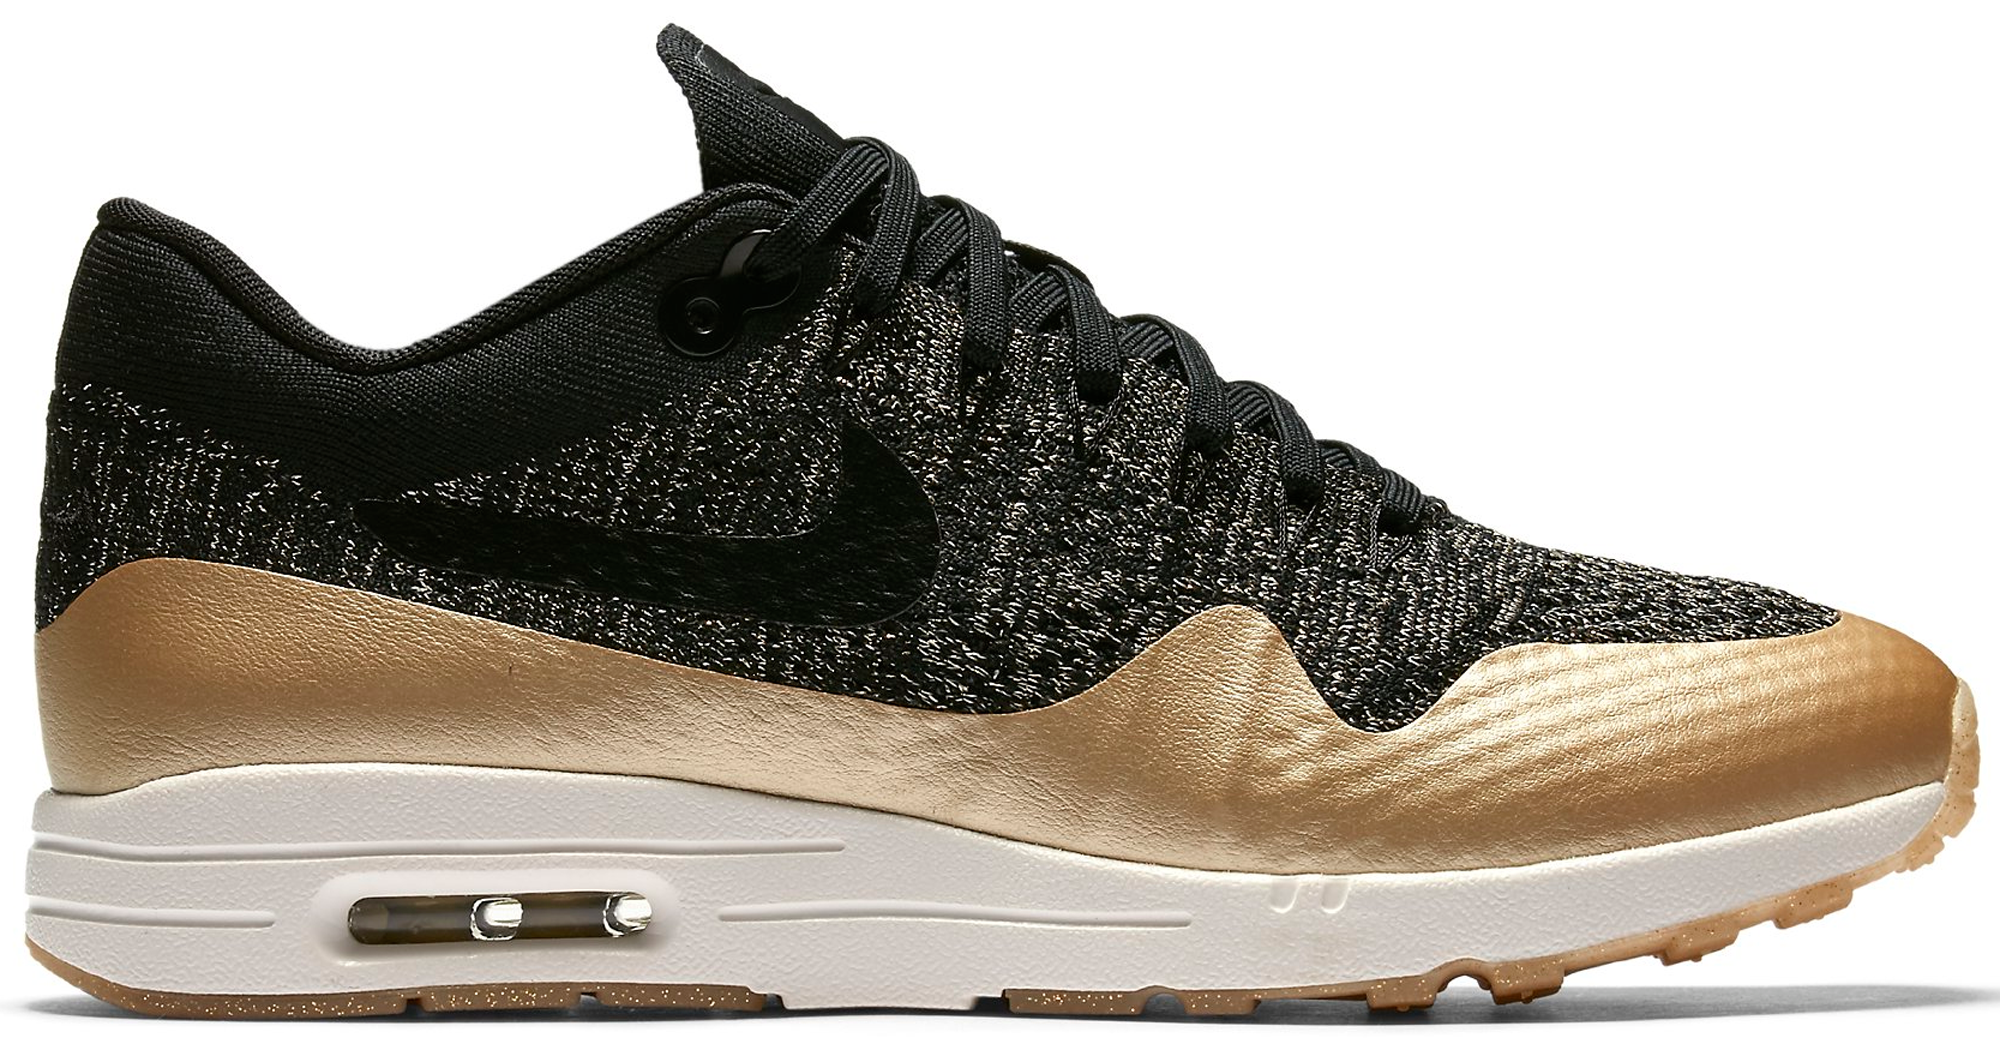 Gold News Air Max Metallic Nike Stockx 1 w 0 2 Ultra Flyknit 6O1Pw8q